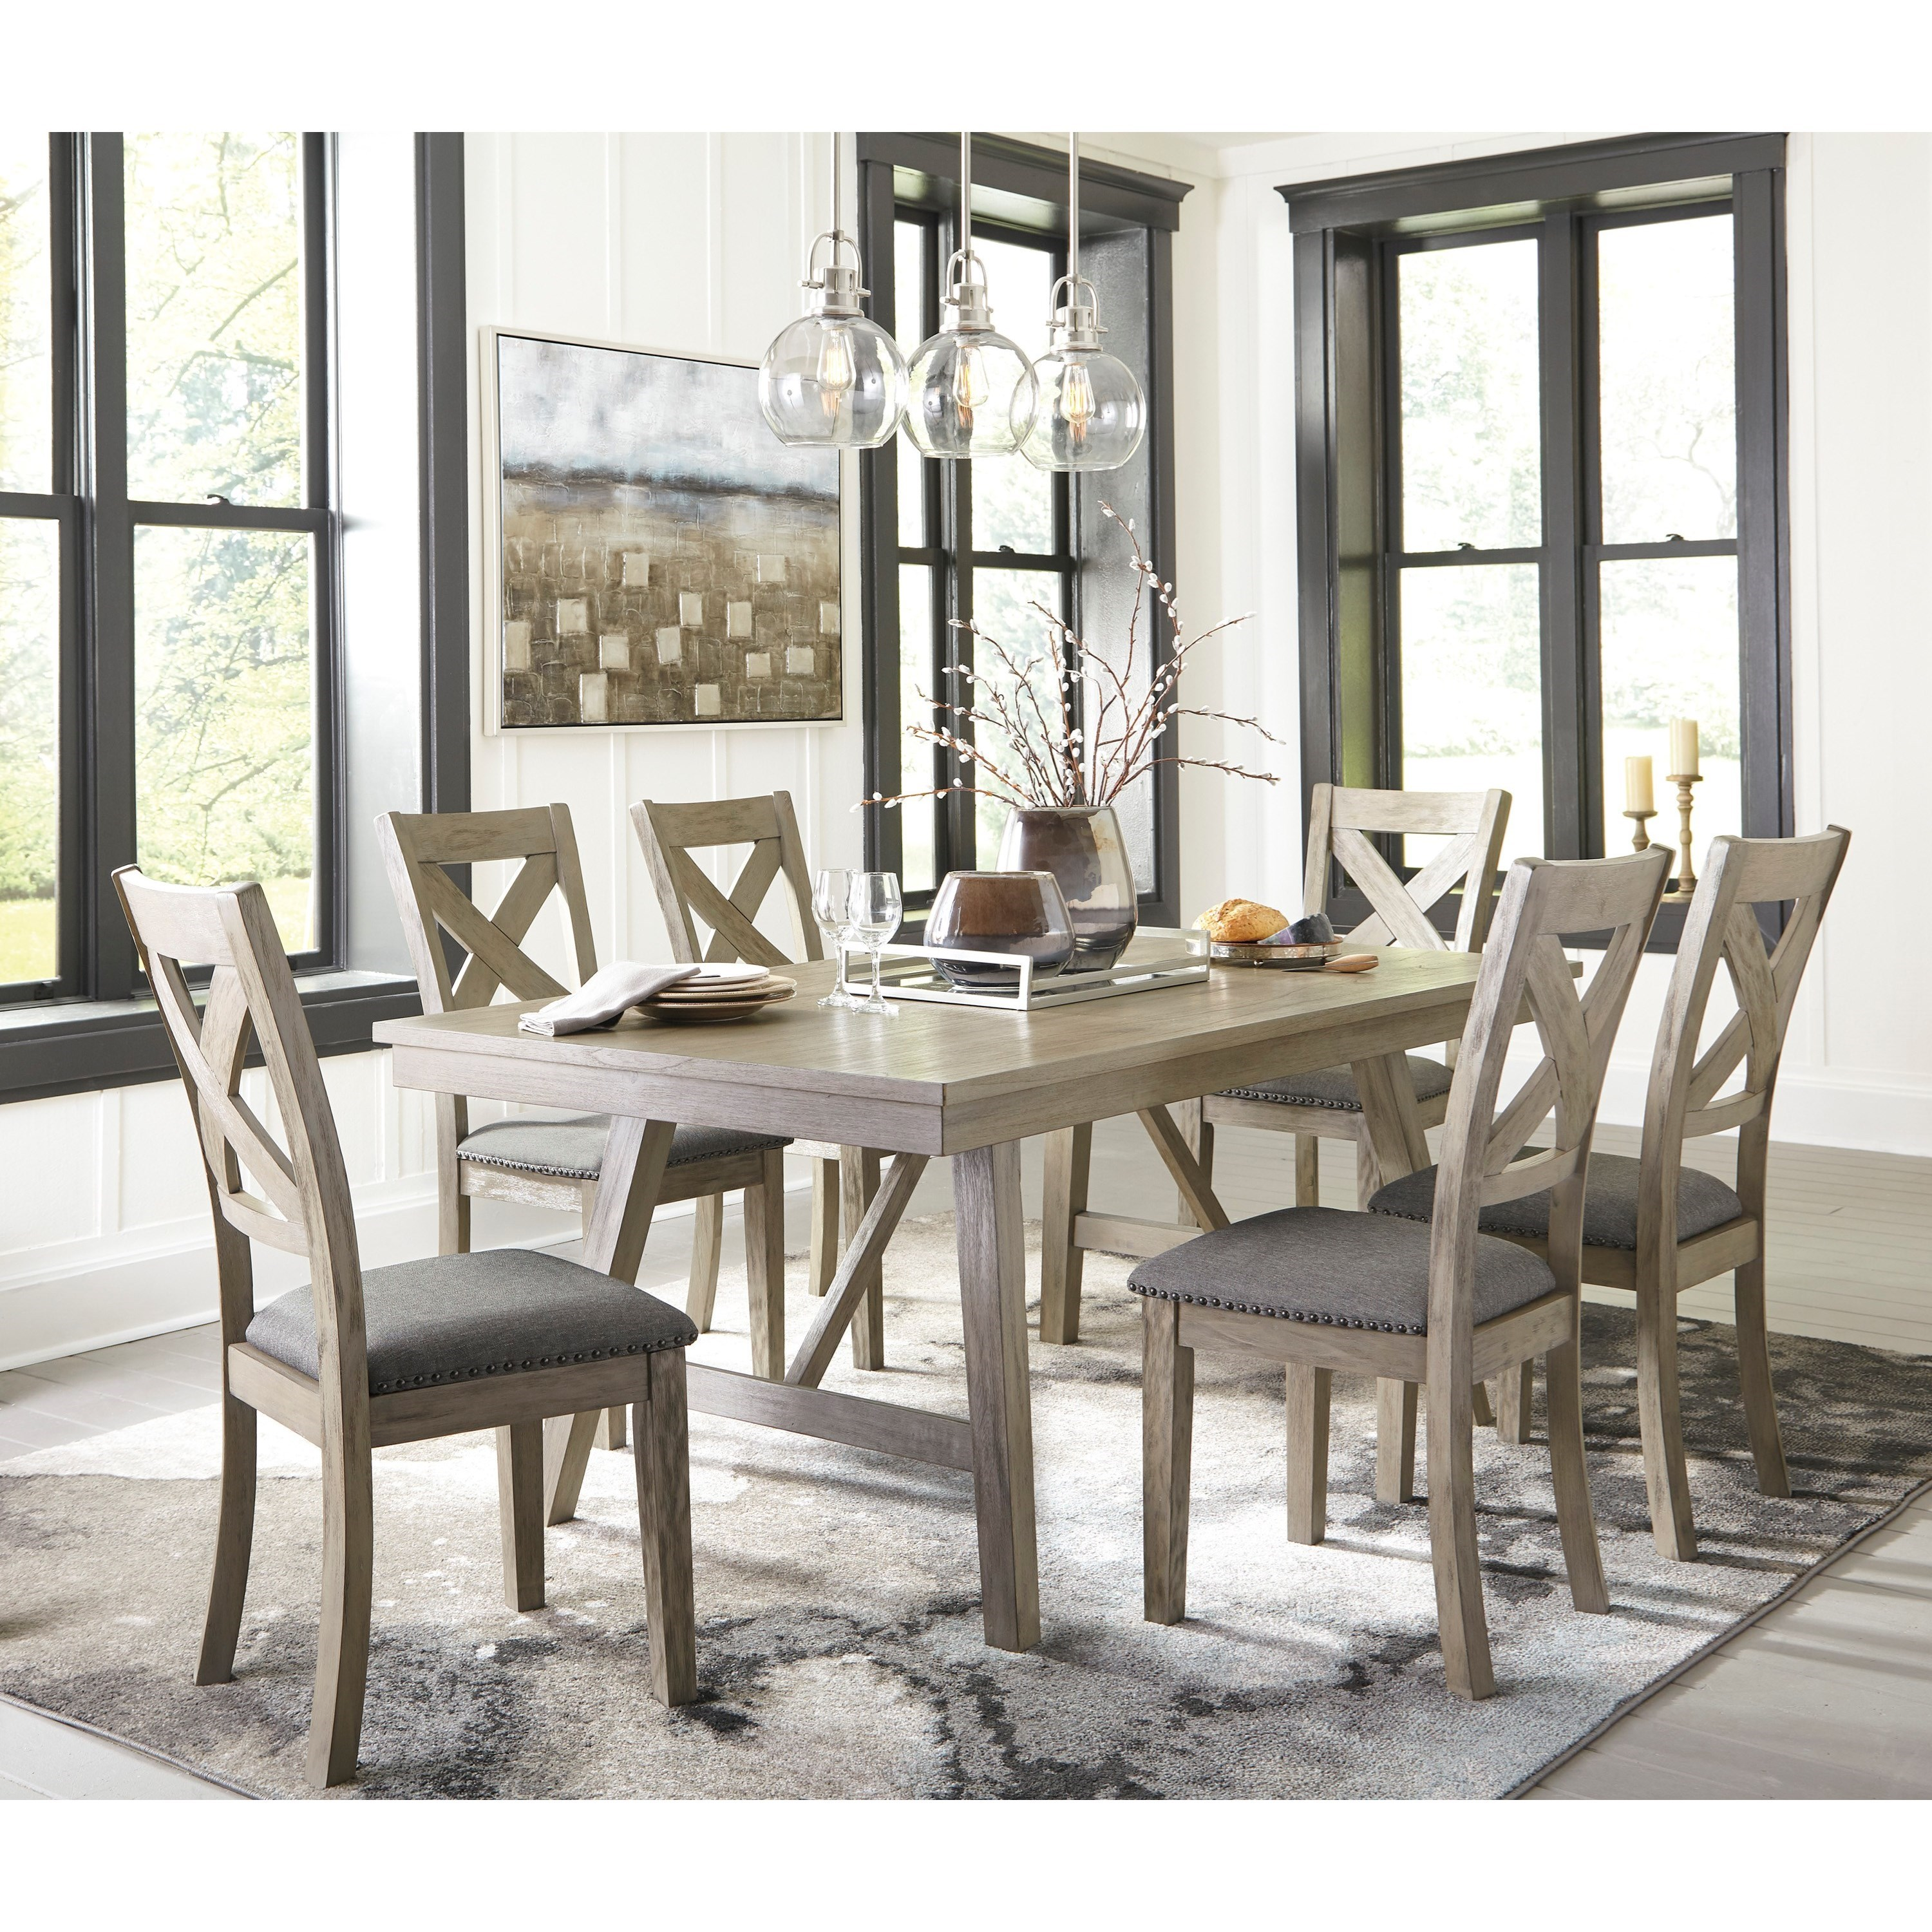 Signature Design By Ashley Furniture Hayley 7 Piece Dining: Signature Design By Ashley Aldwin 7-Piece Table And Chair